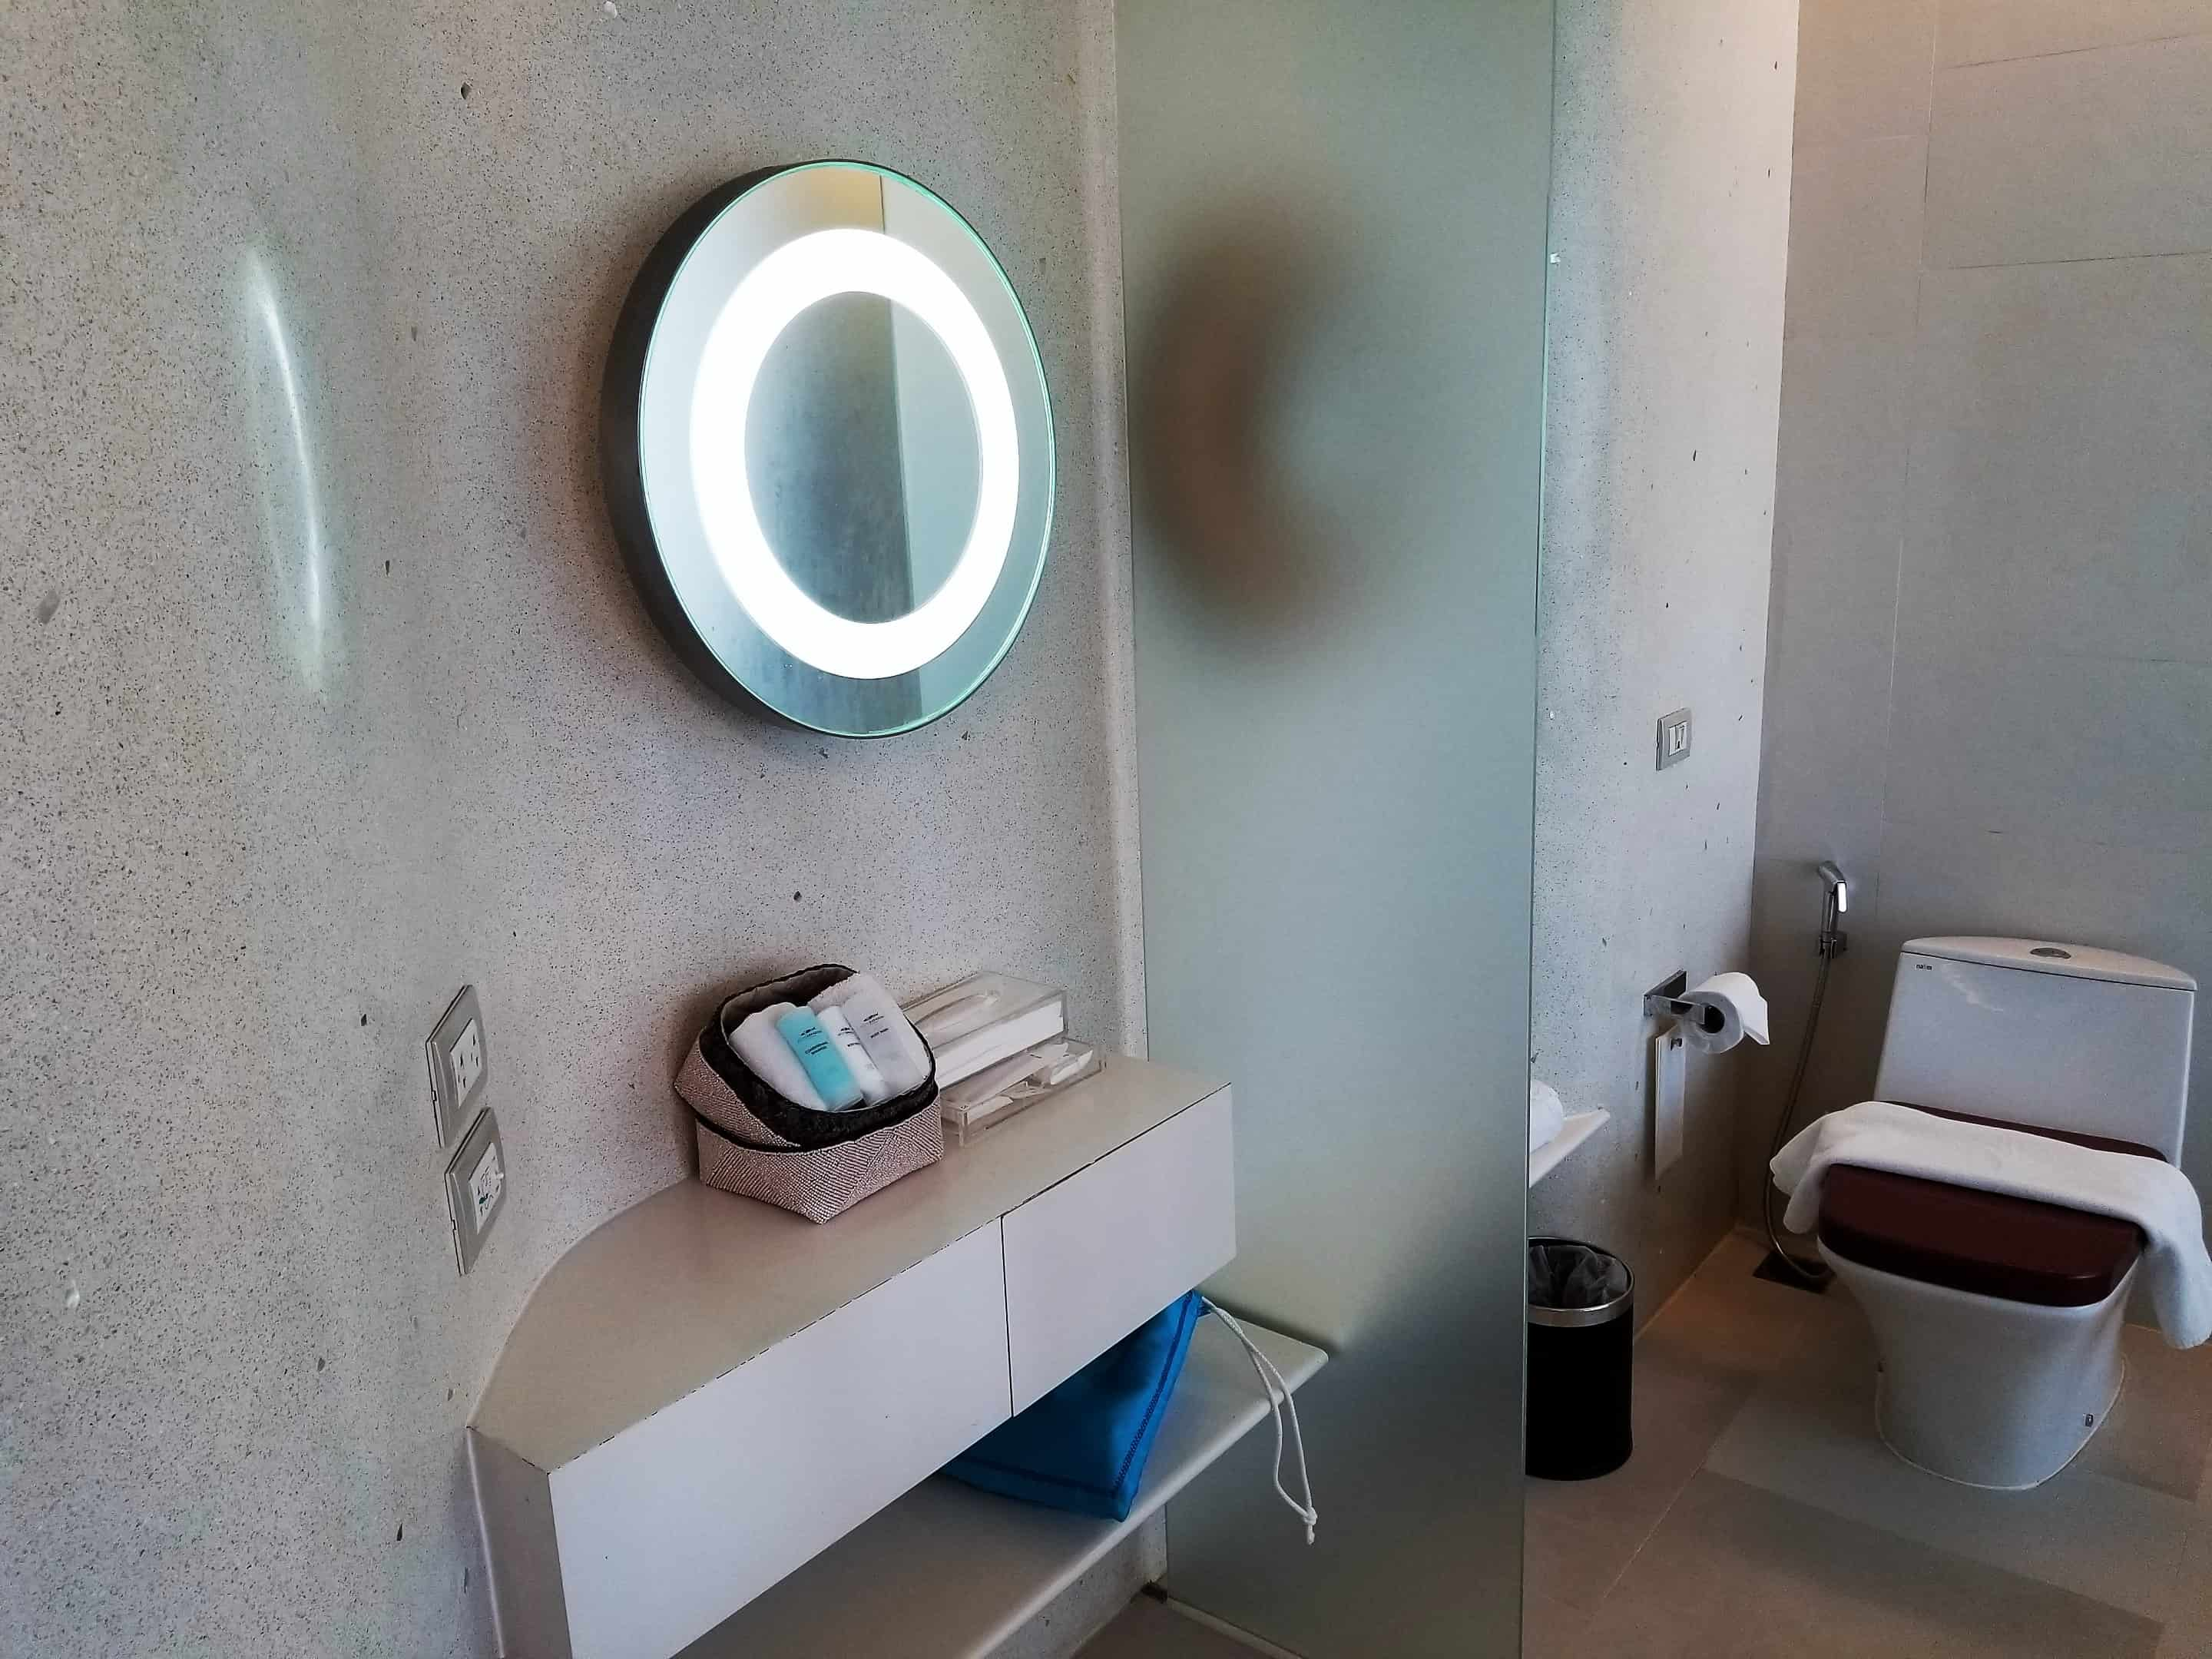 image-of-hotel-bathroom